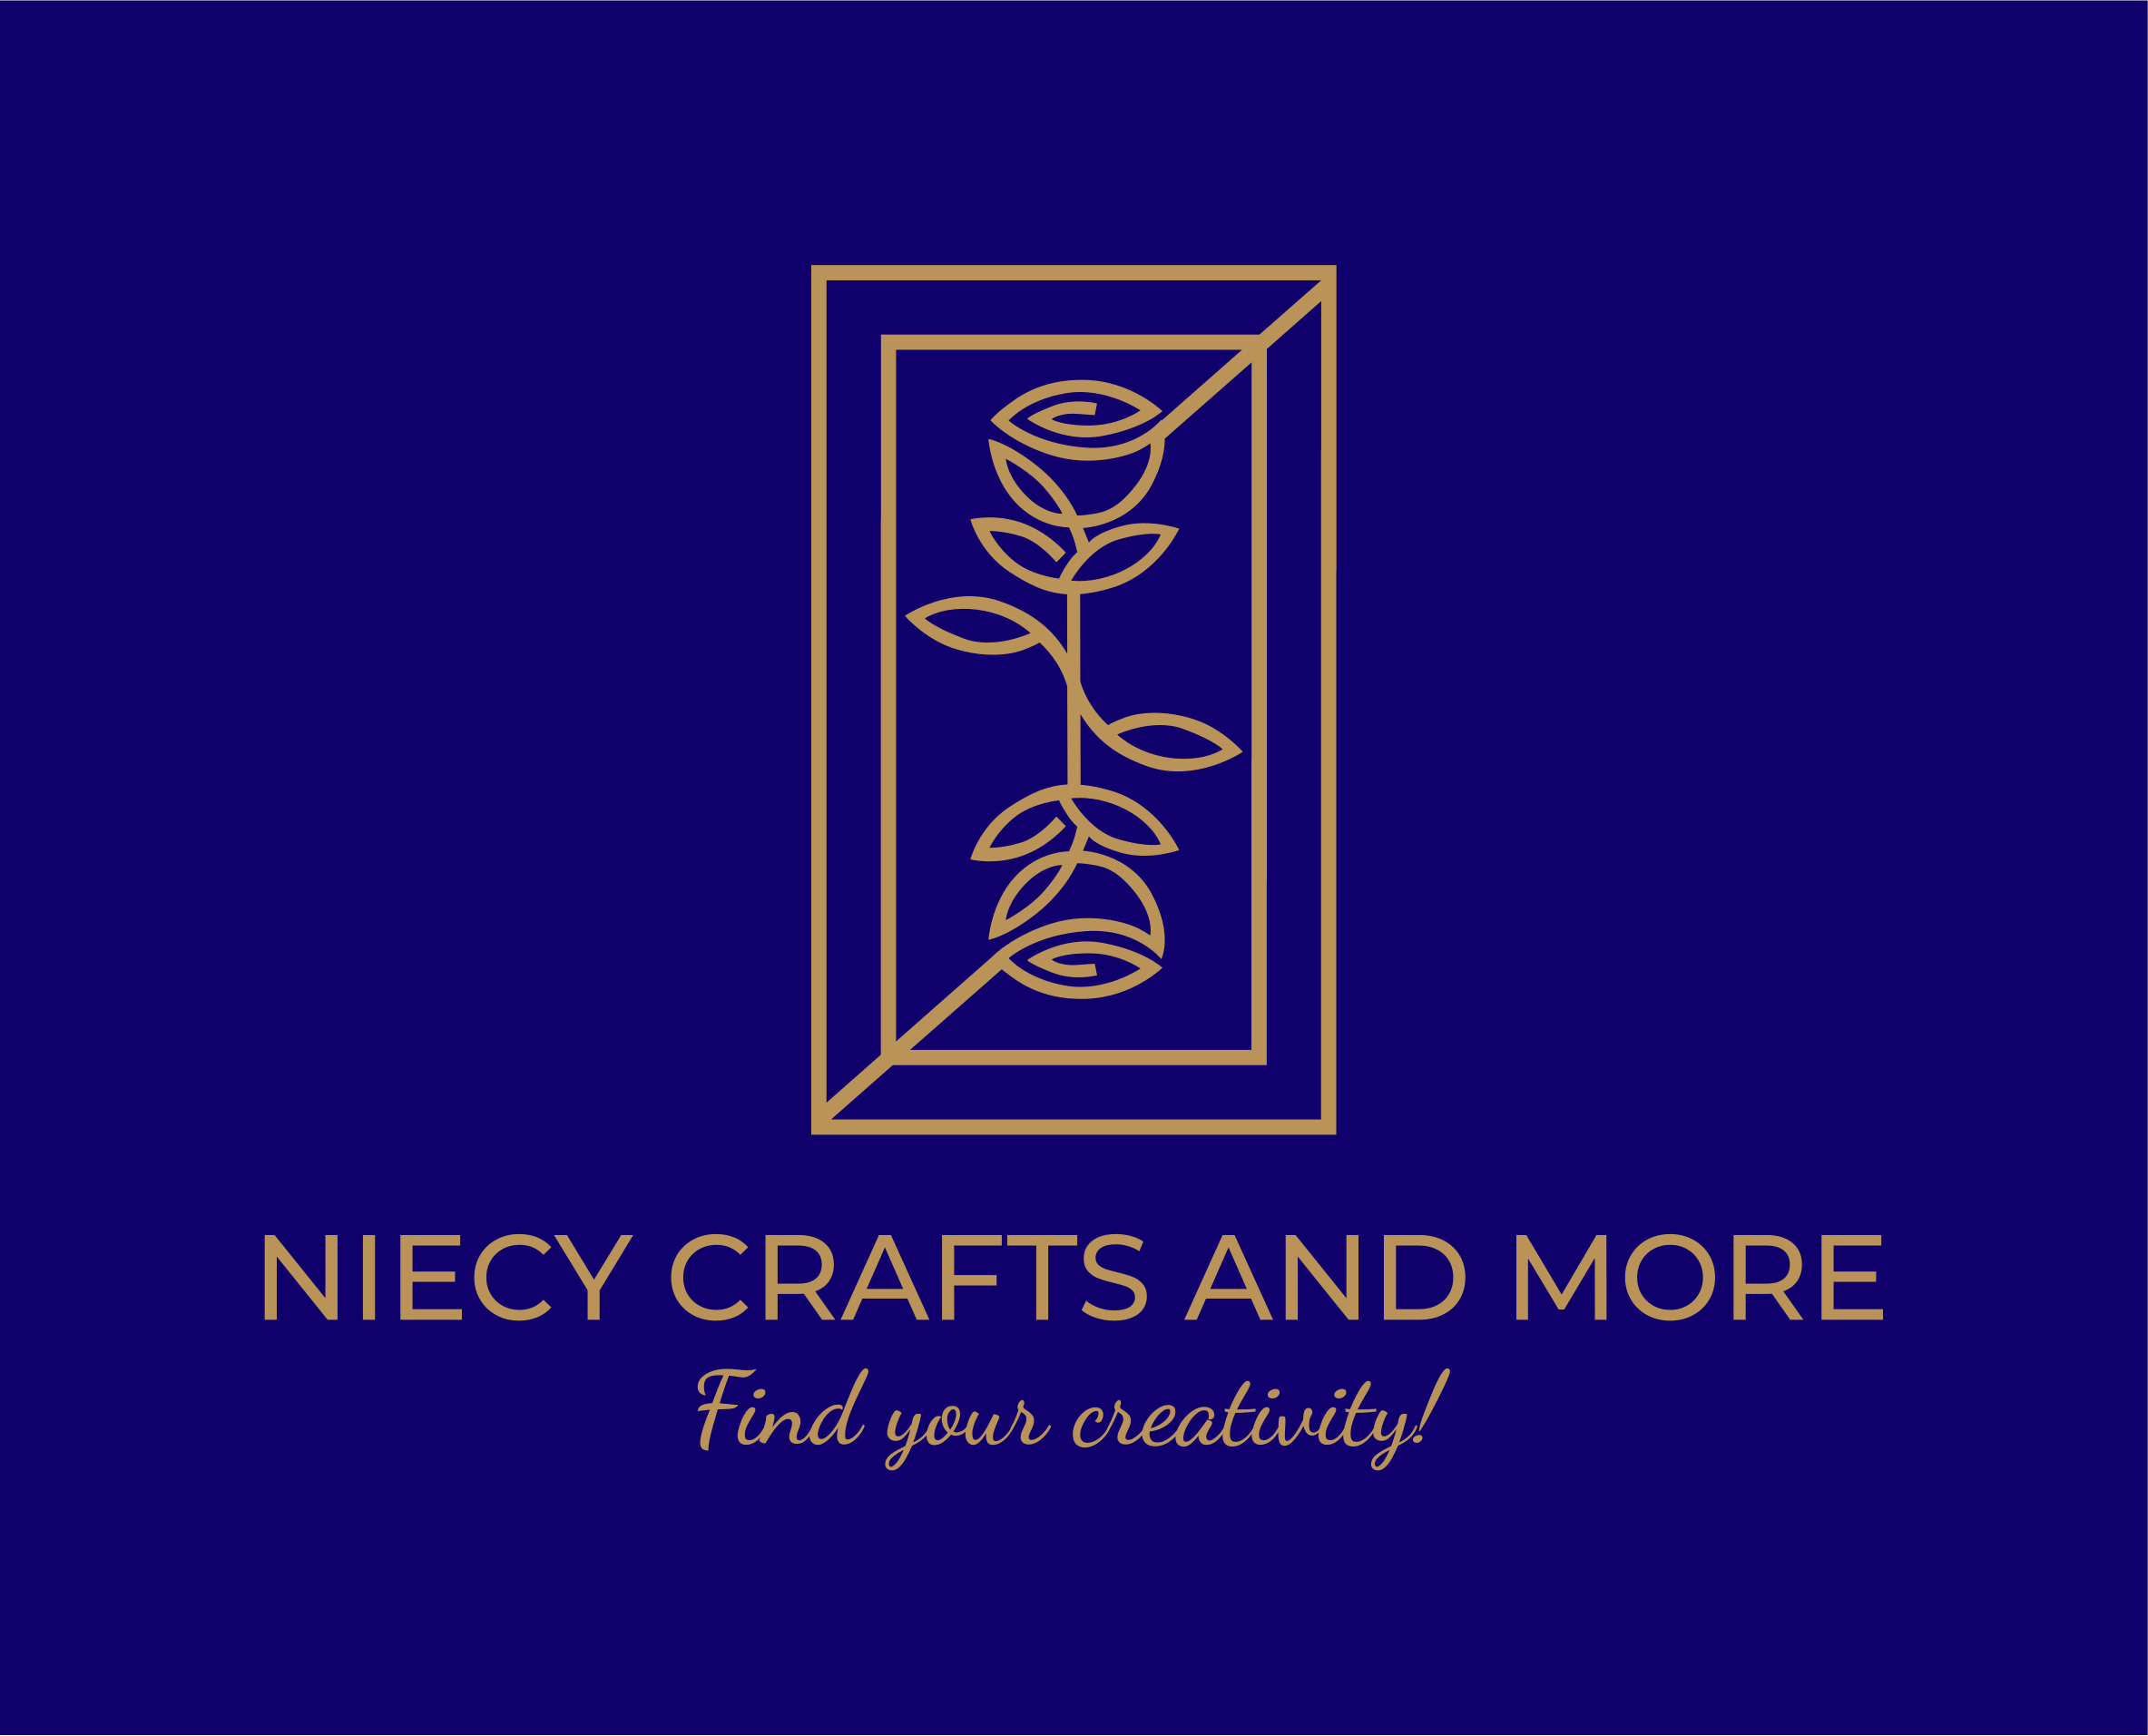 Niecy Crafts and More